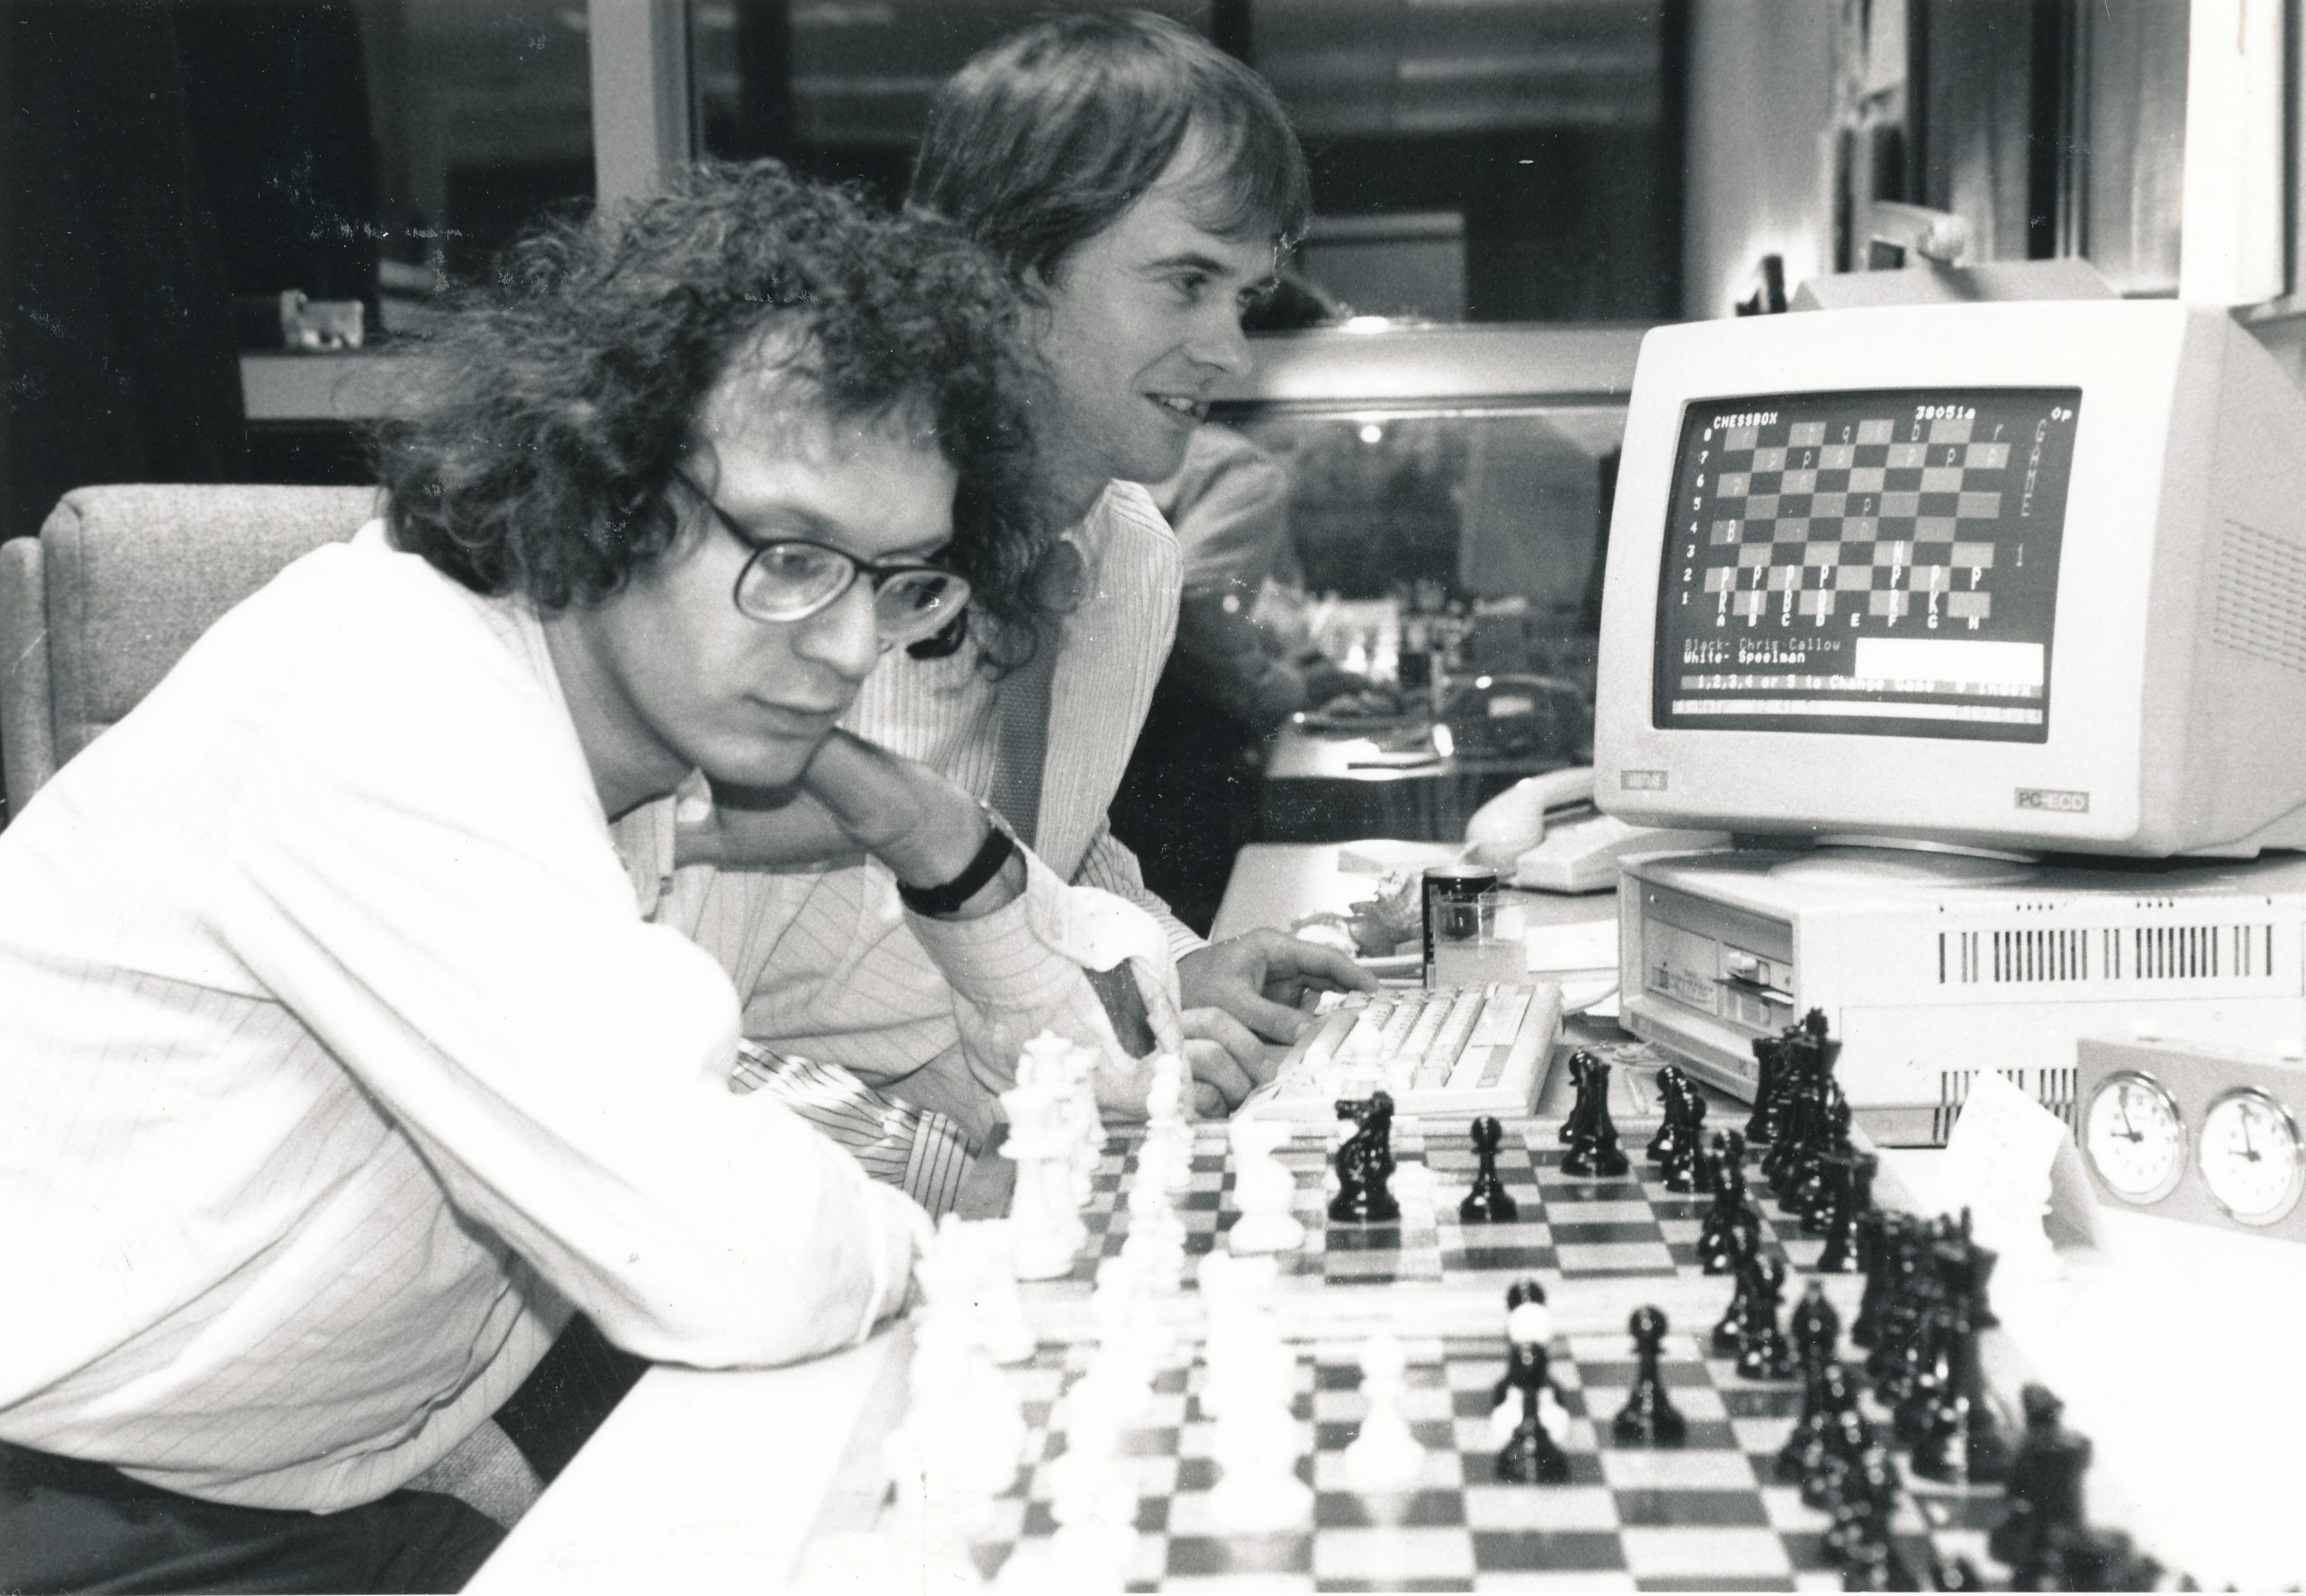 Grandmaster Uses PressTel Chessbox to Play Long Distance Chess. Jonathan Speelman the UK Grandmaster is pictured here deciding his next move in a computer chess game against five simultaneous opponents. Players exchanged moves online via the ChessBox club on PressTel, BTs videotex service.